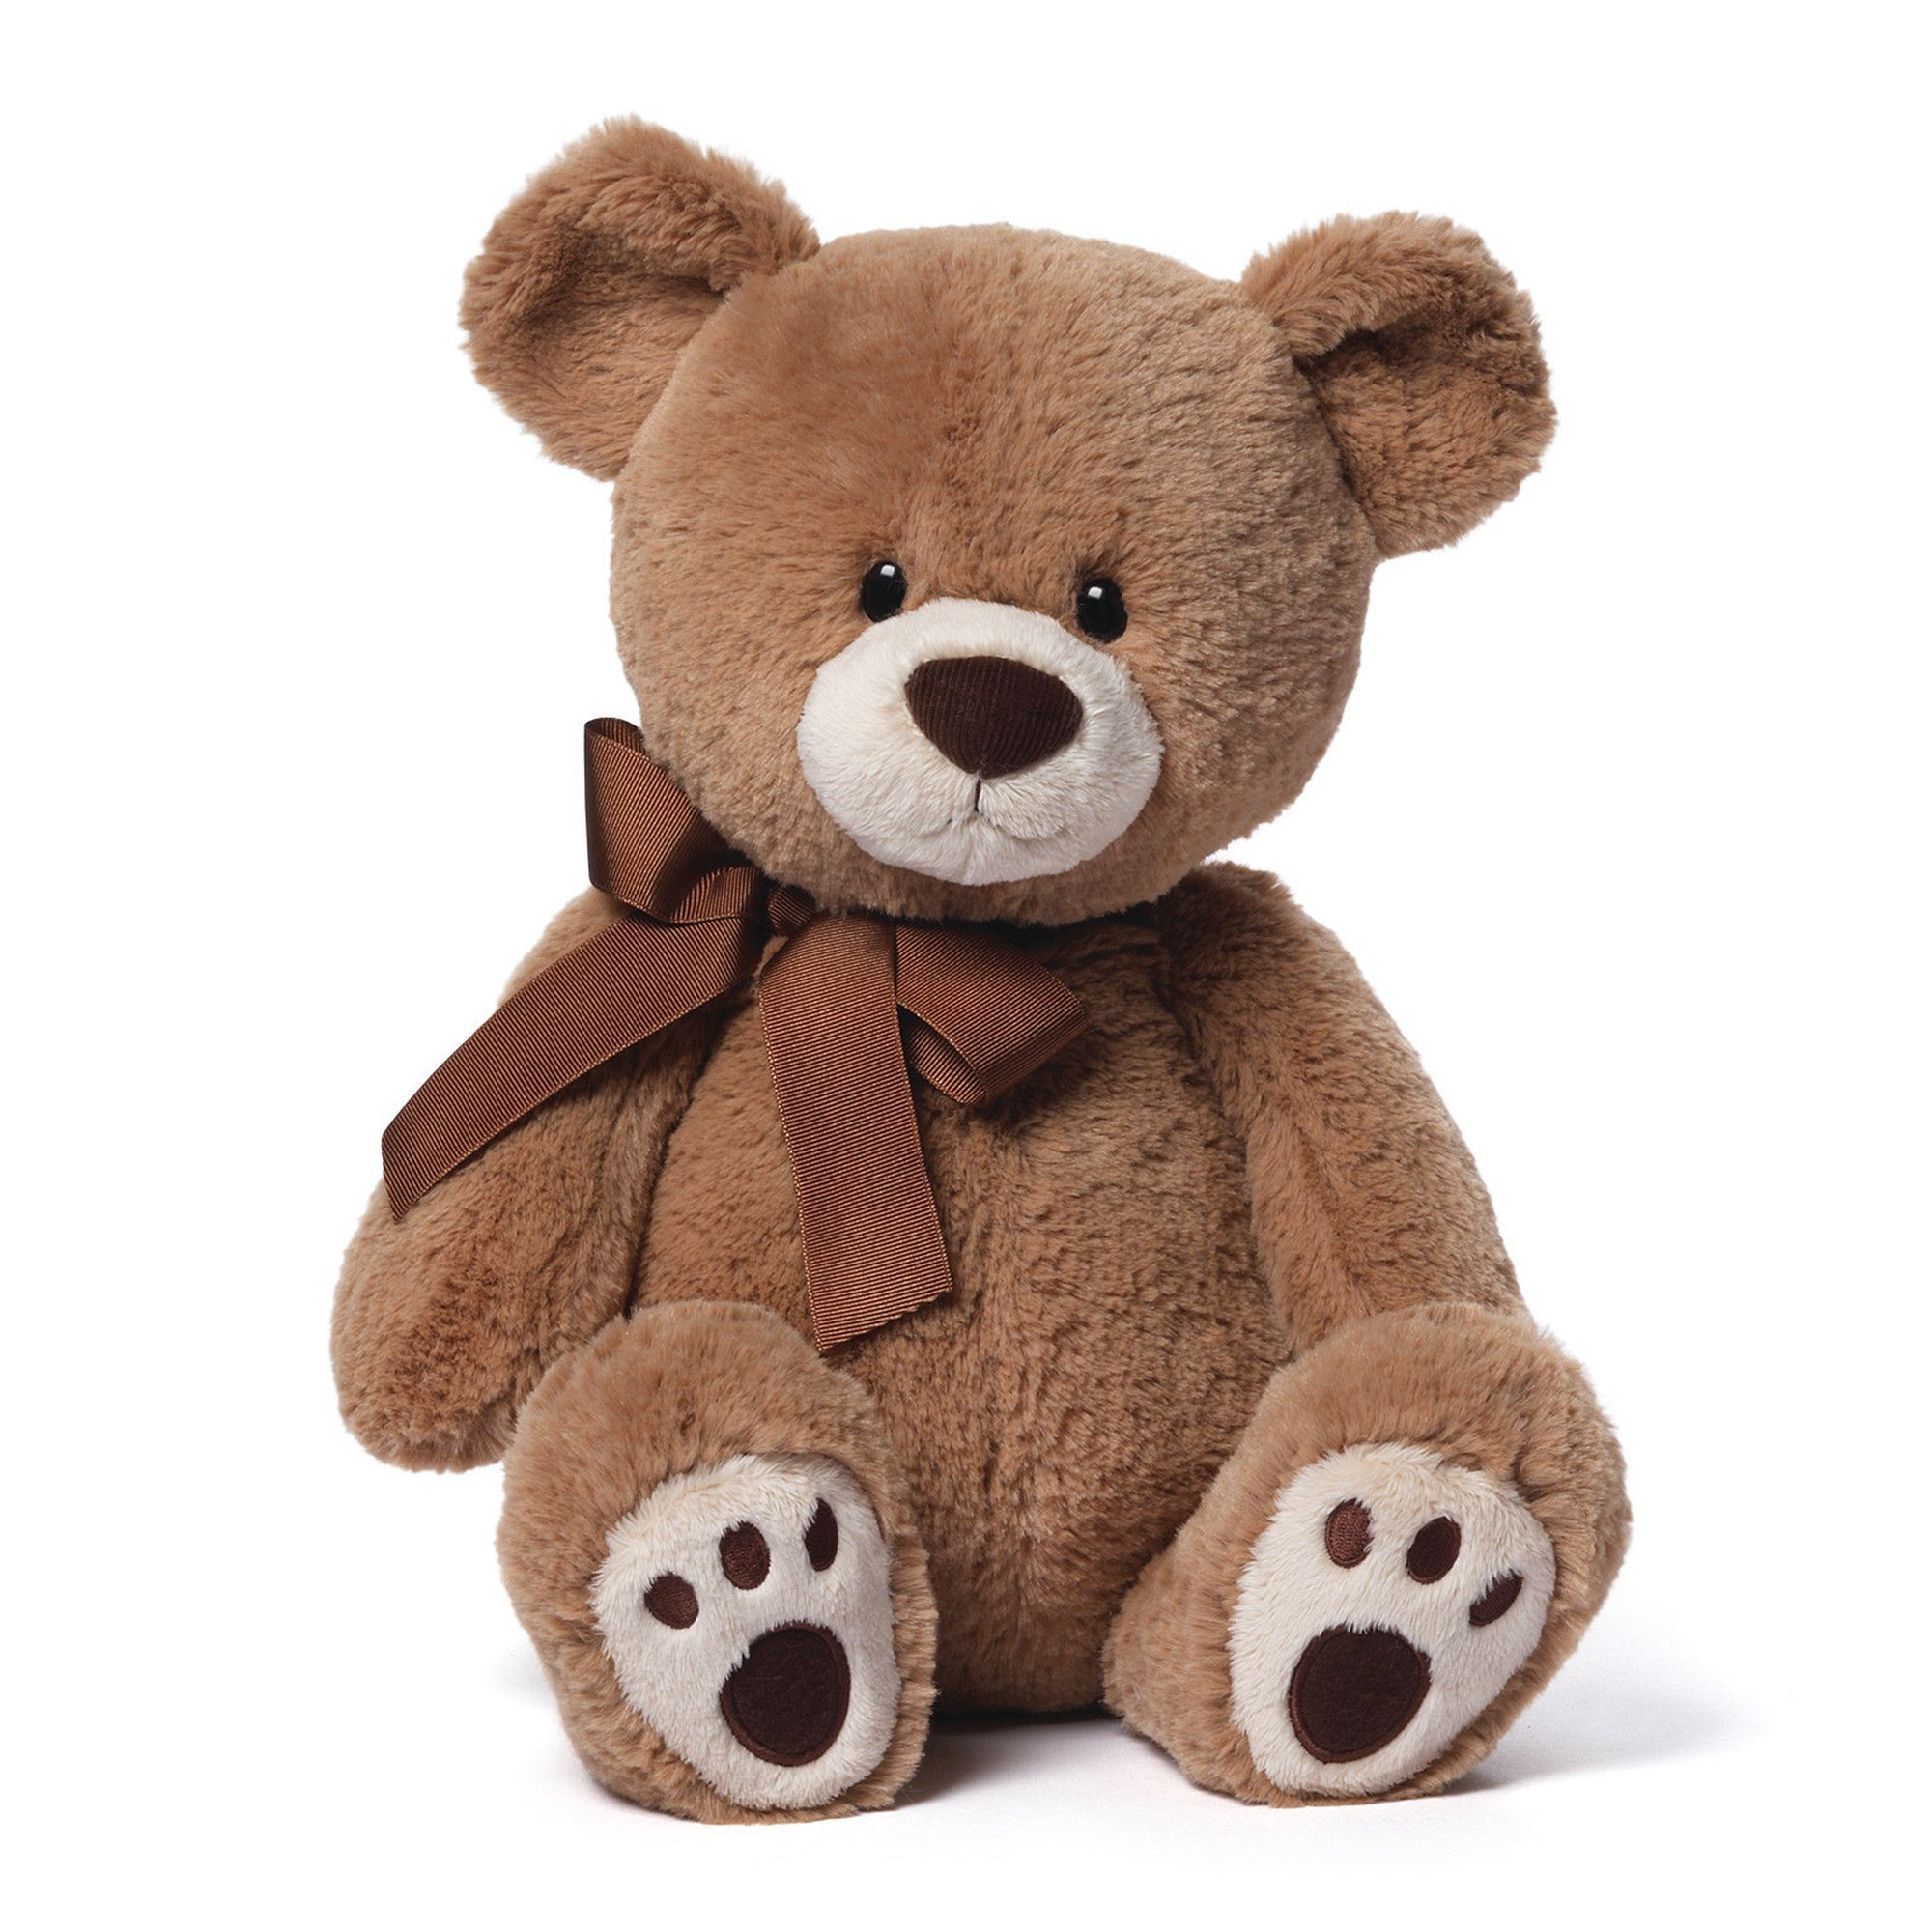 "GUND is proud to present Kiwi — a tan bear with a cute little corduroy nose! Features a classic design and paw pad accents, while a bow provides some chic appeal. This 17"" size is perfect for cuddling"